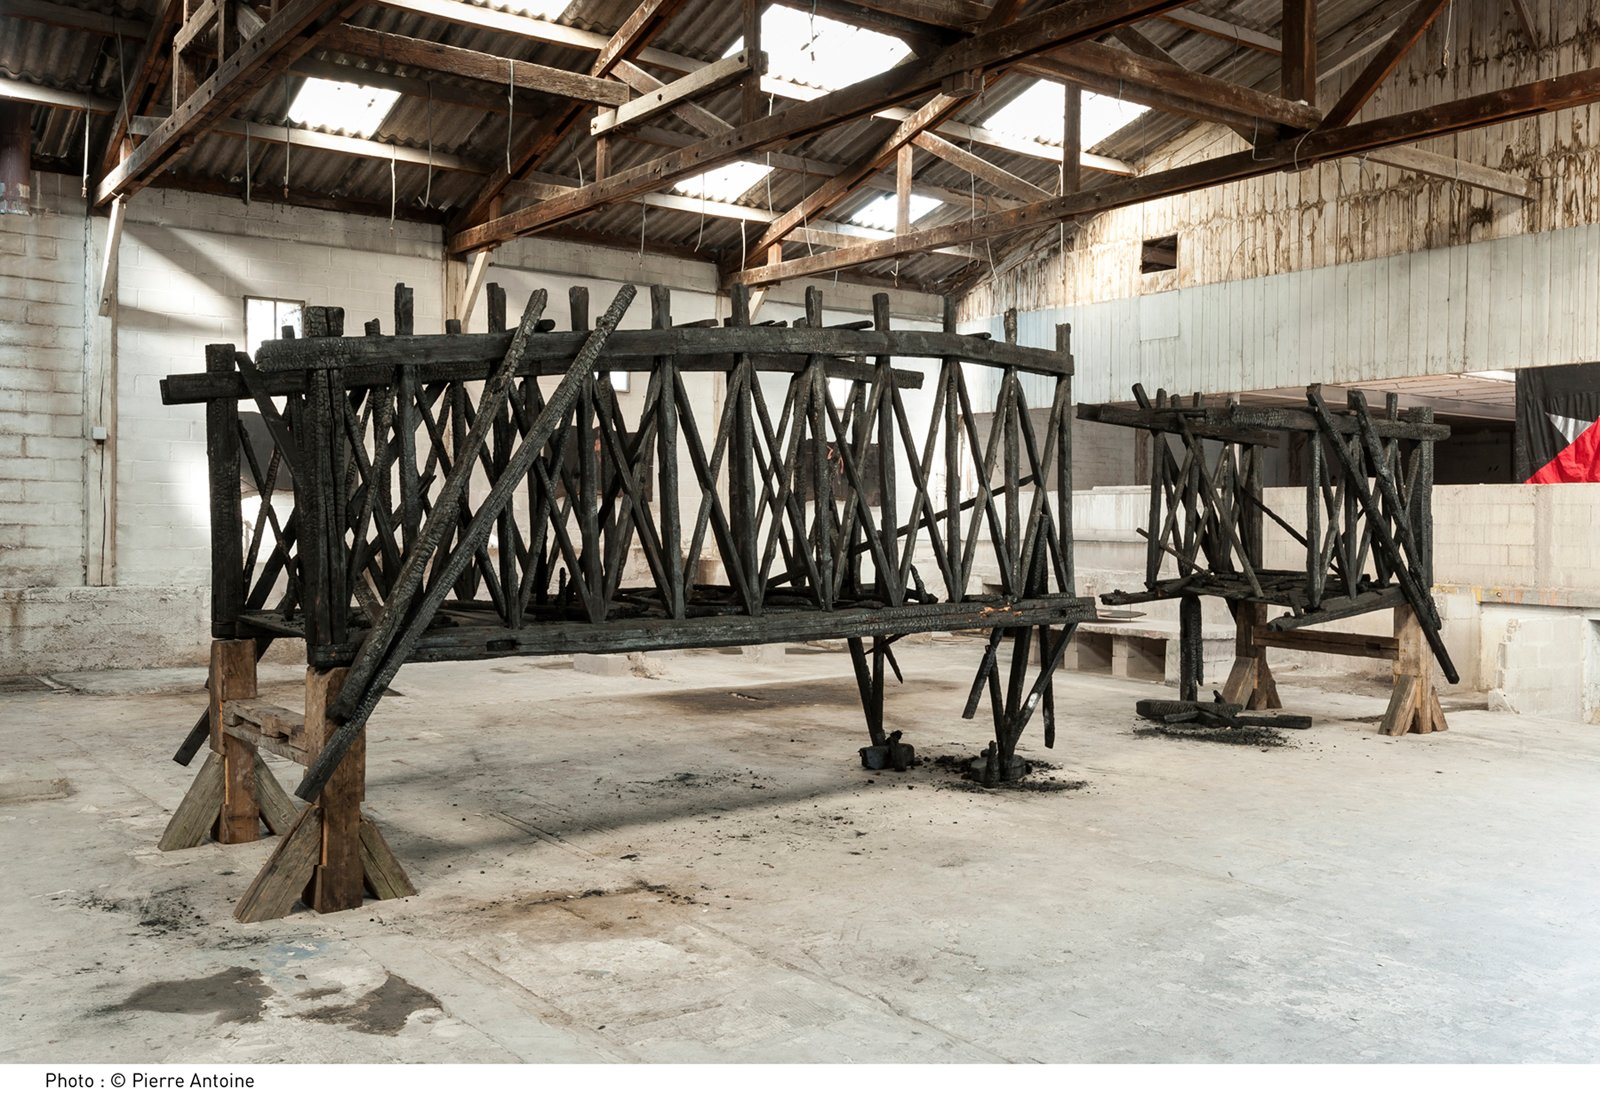 Marianne Vitale's weathervane-centric piece for Frieze will be a departure from past work. Burned Bridge (Montreuil), 2012. Reclaimed lumber. Photograph by Pierre Antoine, courtesy of the artist.  Photo 6 of 6 in Frieze Art Fair: 7 Things Not to Be Missed